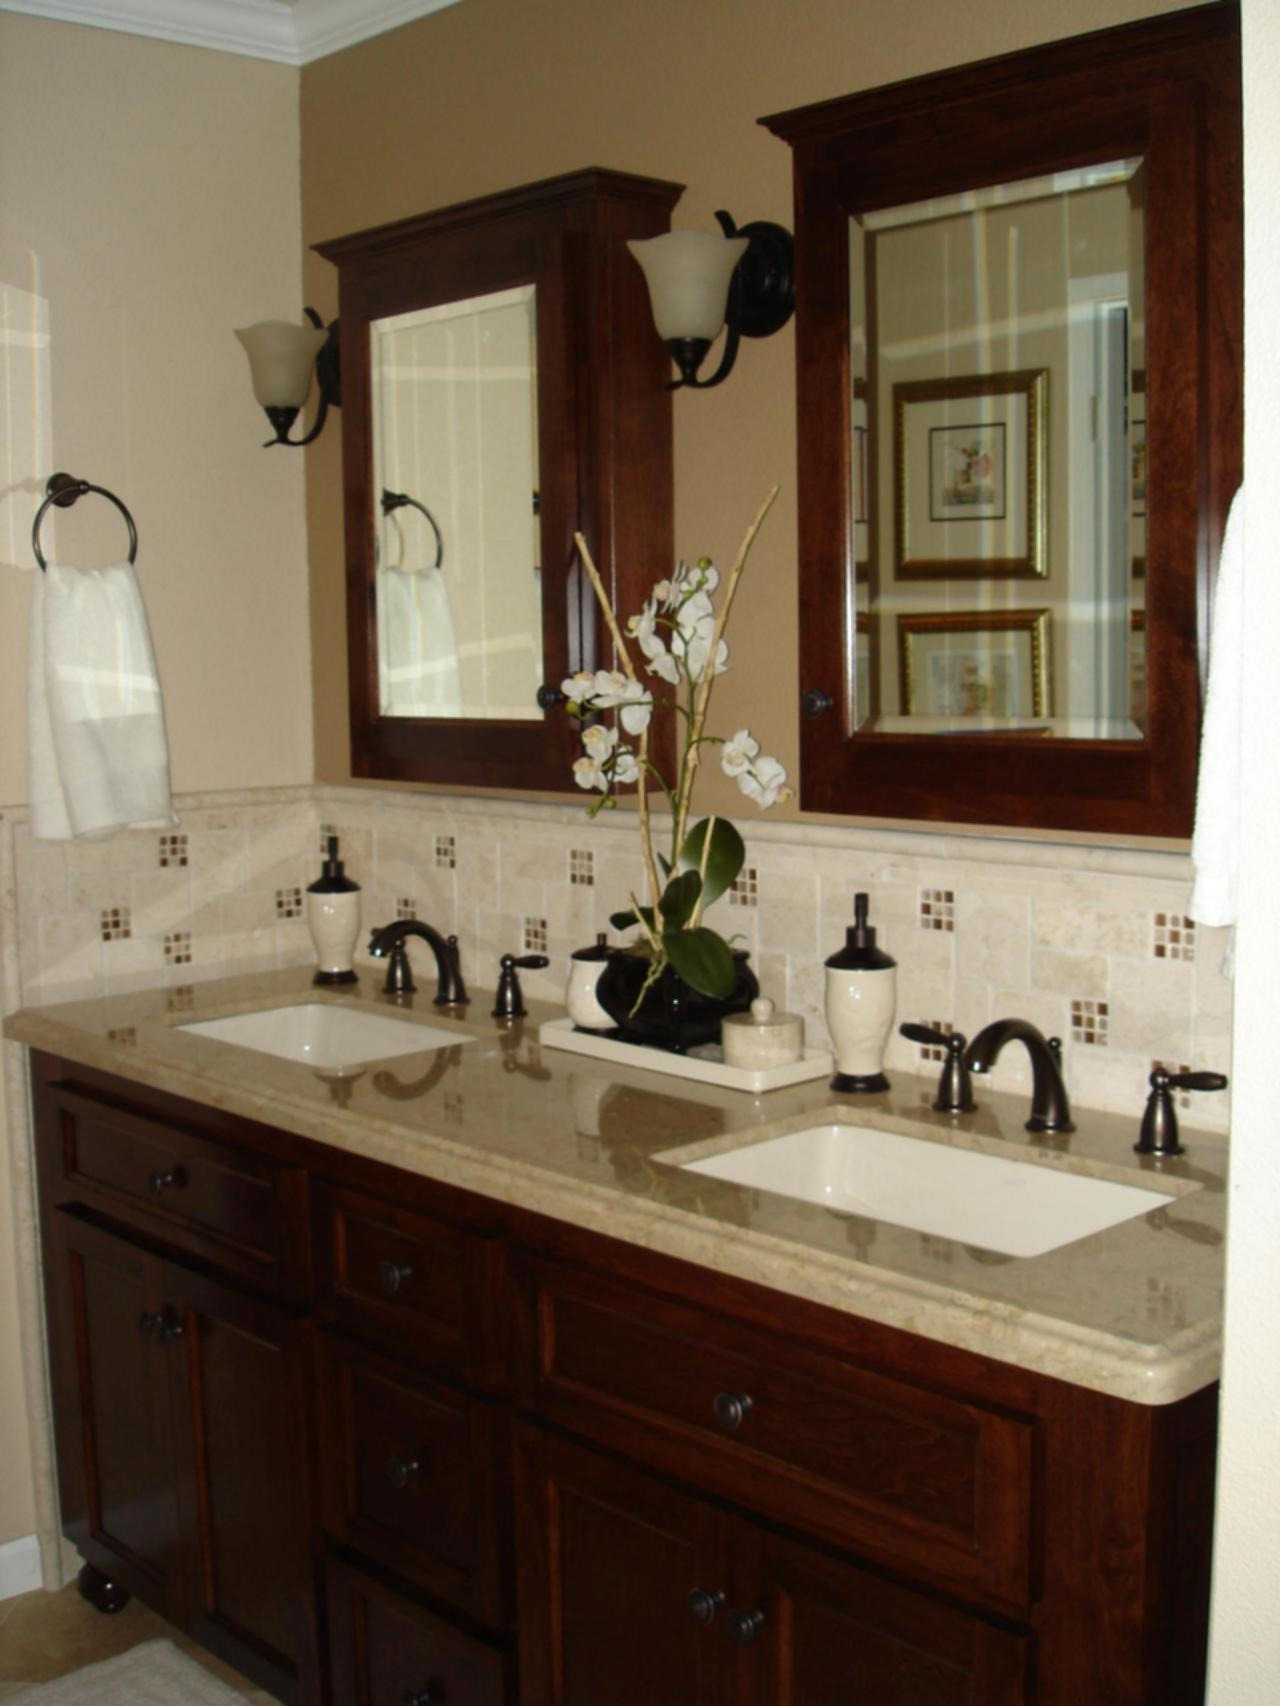 double sink bathroom vanity decorating ideas home plan designs fresh decoration